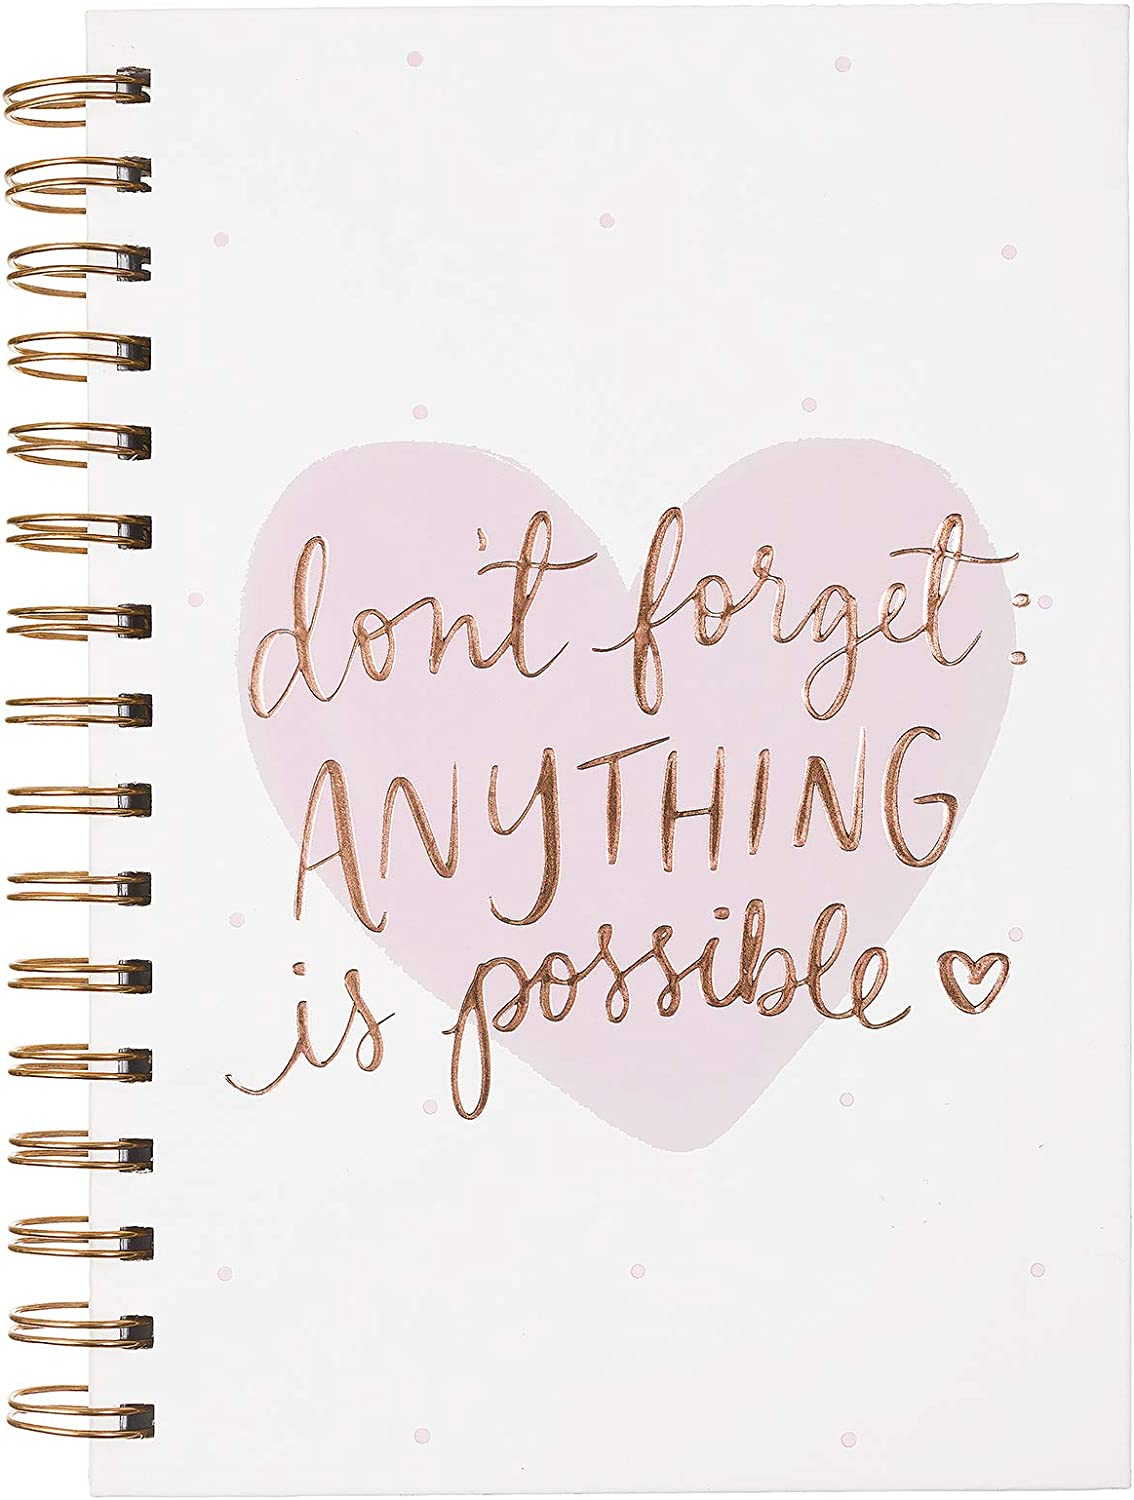 Dayna Lee Collection 6x8 Wirebound Hard Cover Notebook, 200 Pages, Acid-free Lined Sheets, Anything Is Possible